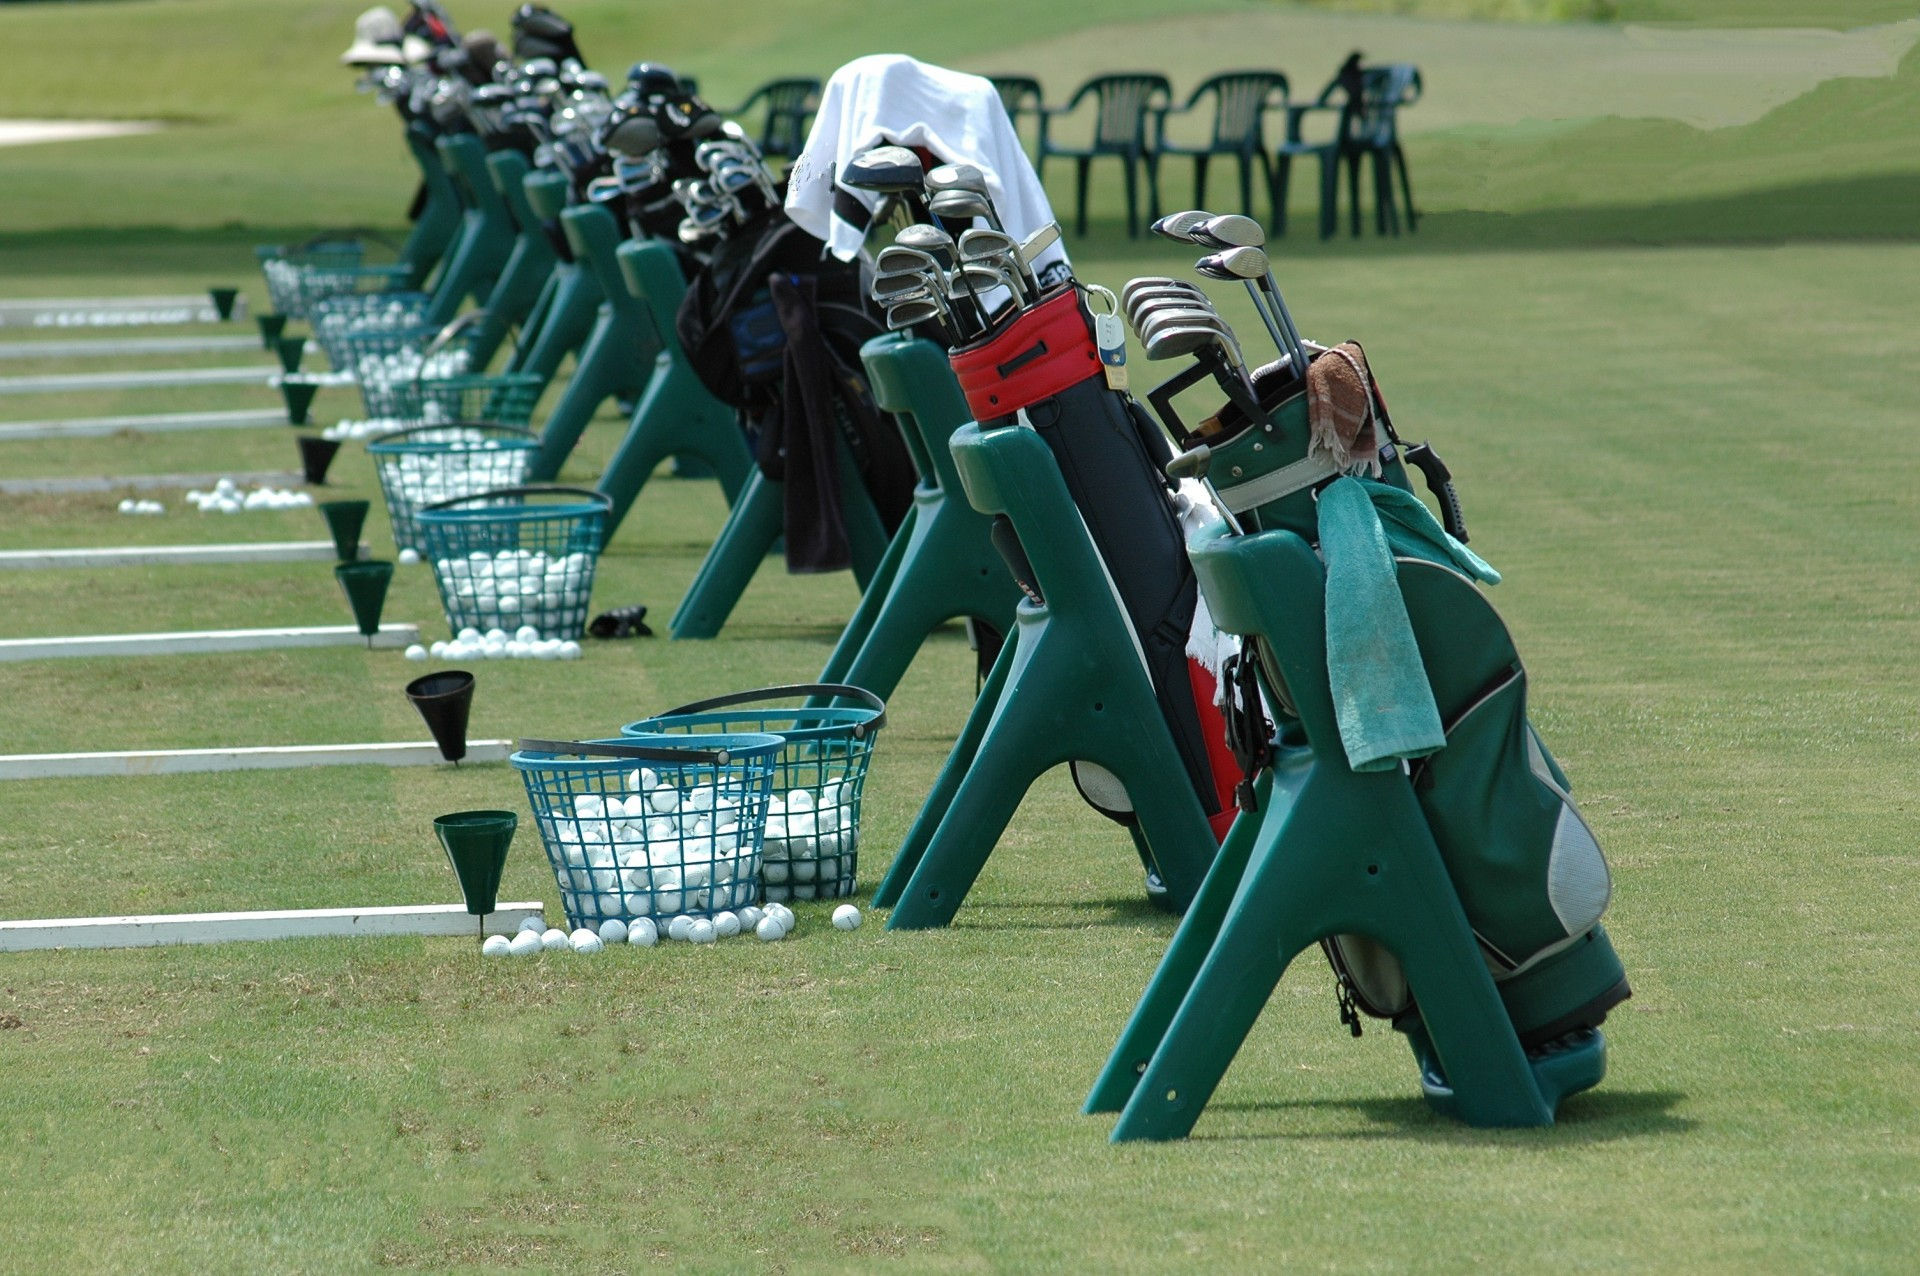 golf-bags-lined-up.jpg